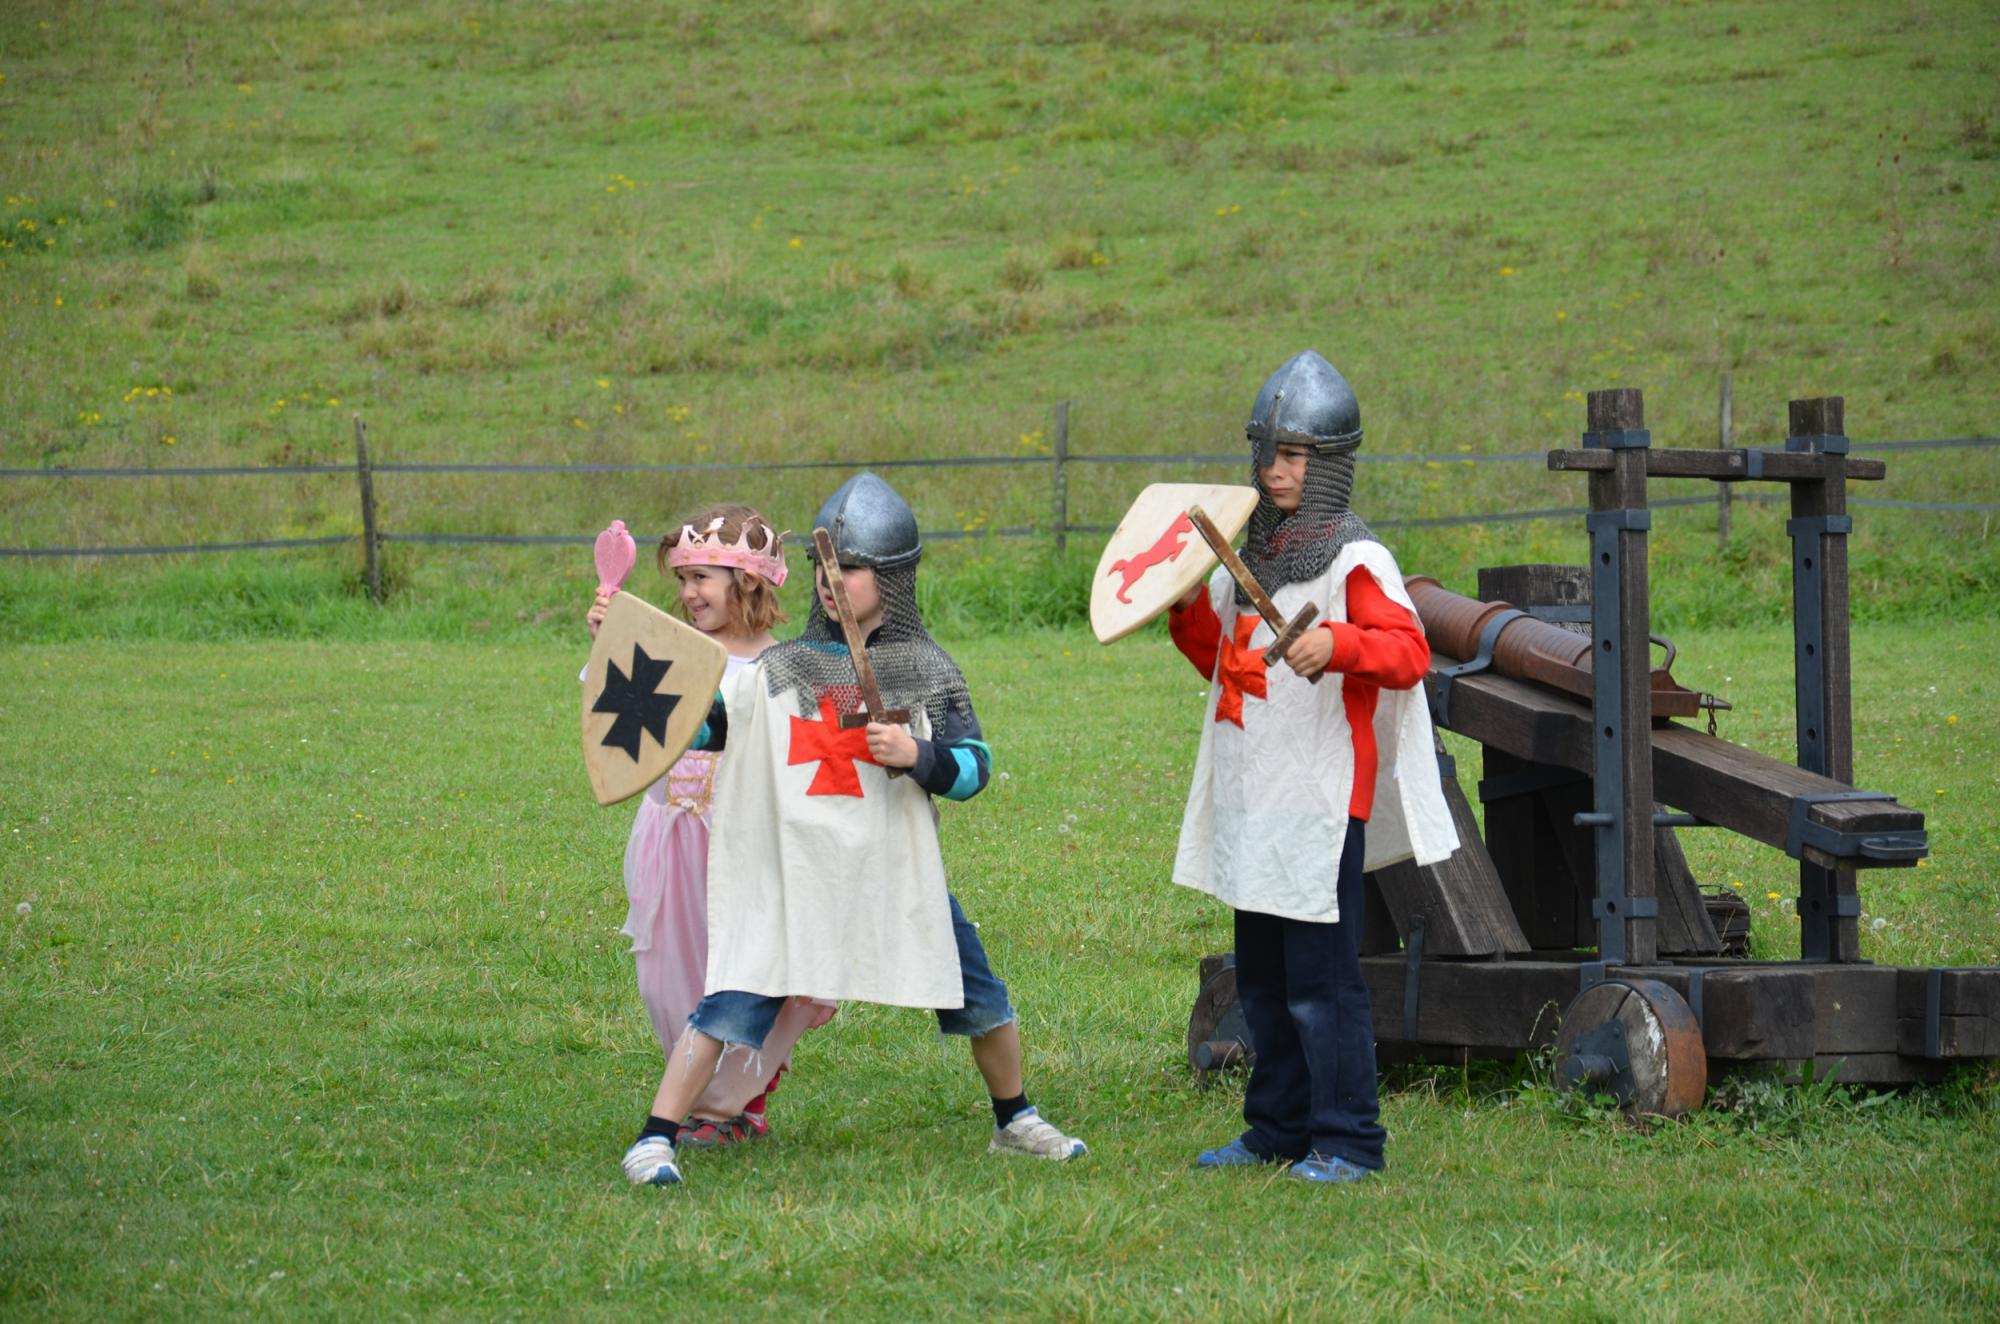 A visit in costume in the fortified castle and medieval theme park in Charente Maritime